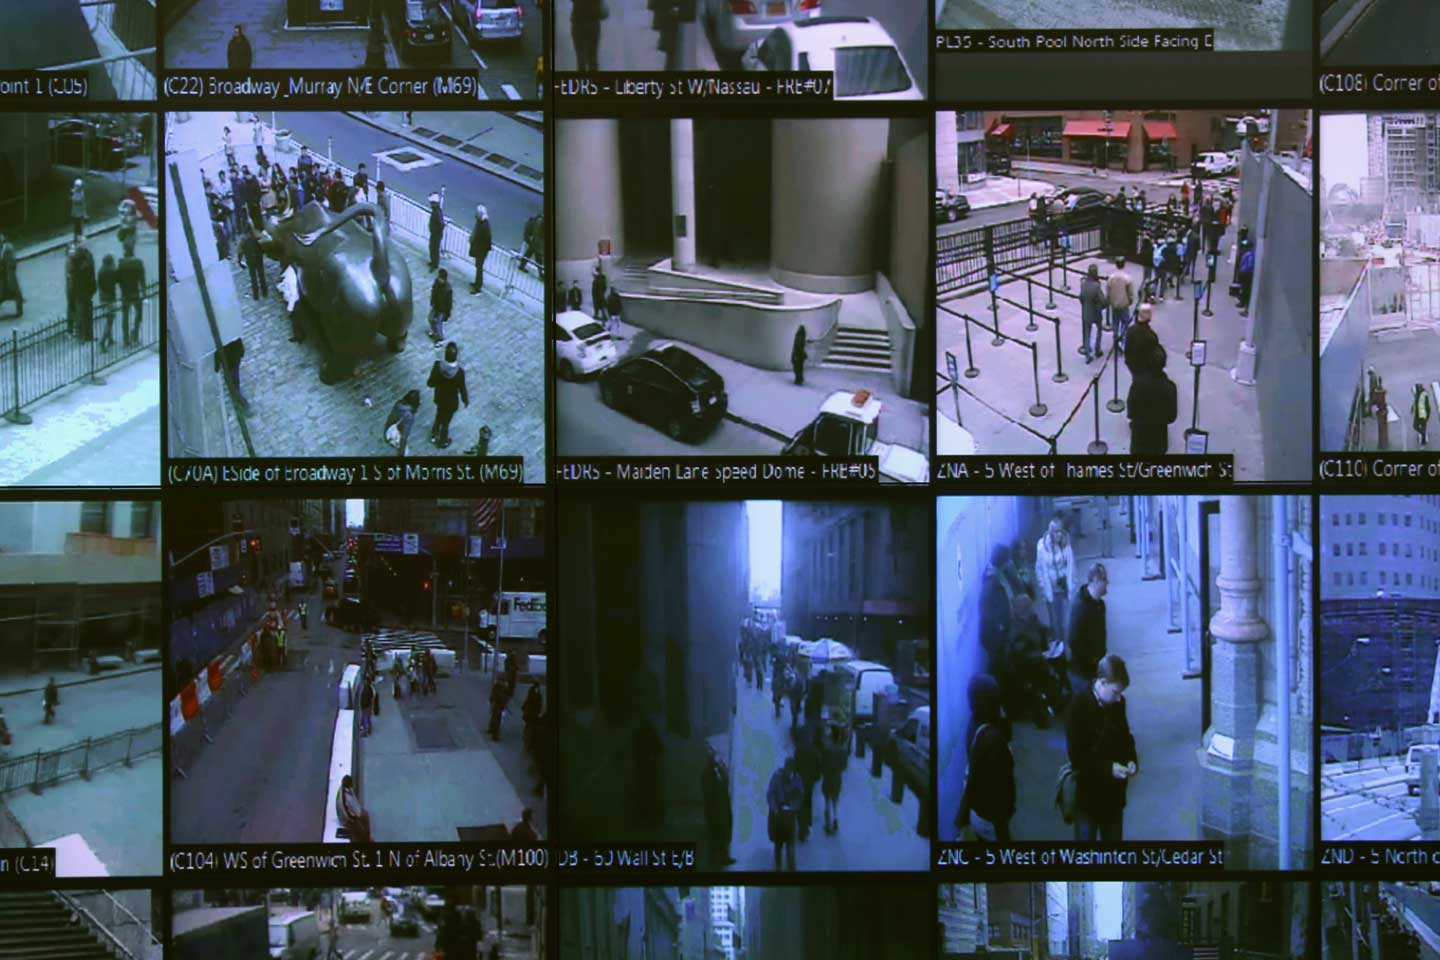 "Monitors show imagery from security cameras seen at the Lower Manhattan Security Initiative on April 23, 2013 in New York City. At the counter-terrorism center, police and private security personnel monitor more than 4,000 surveillance cameras and license plate readers mounted around the Financial District and surrounding parts of Lower Manhattan. Designed to identify potential threats it is modeled after London's ""Ring of Steel"" system.  (John Moore/Getty Images)"